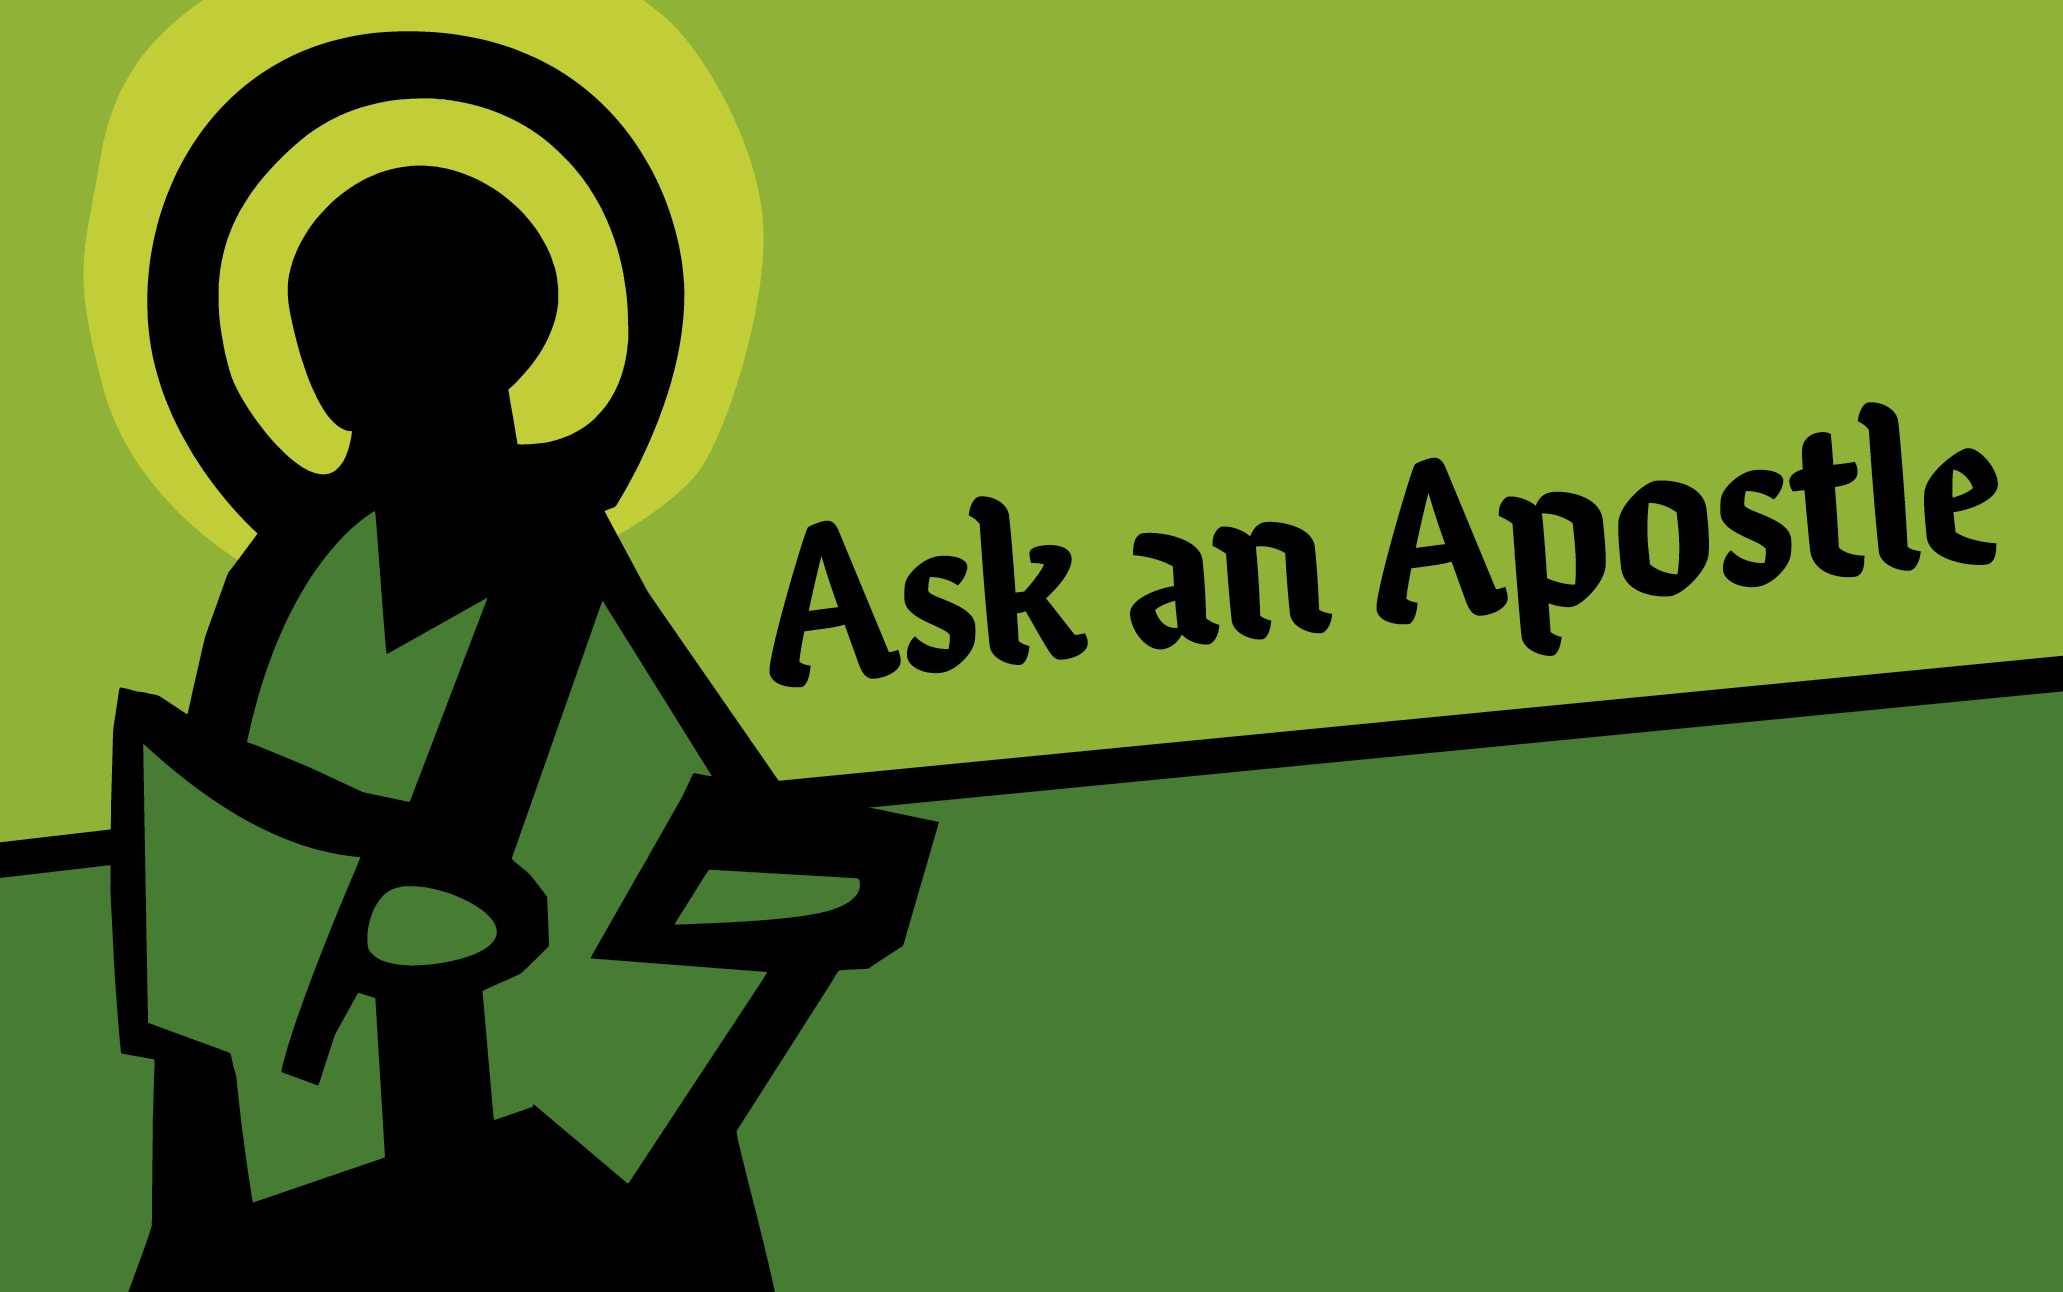 Green-image-of-an-apostle-with-text-Ask-an-Apostle